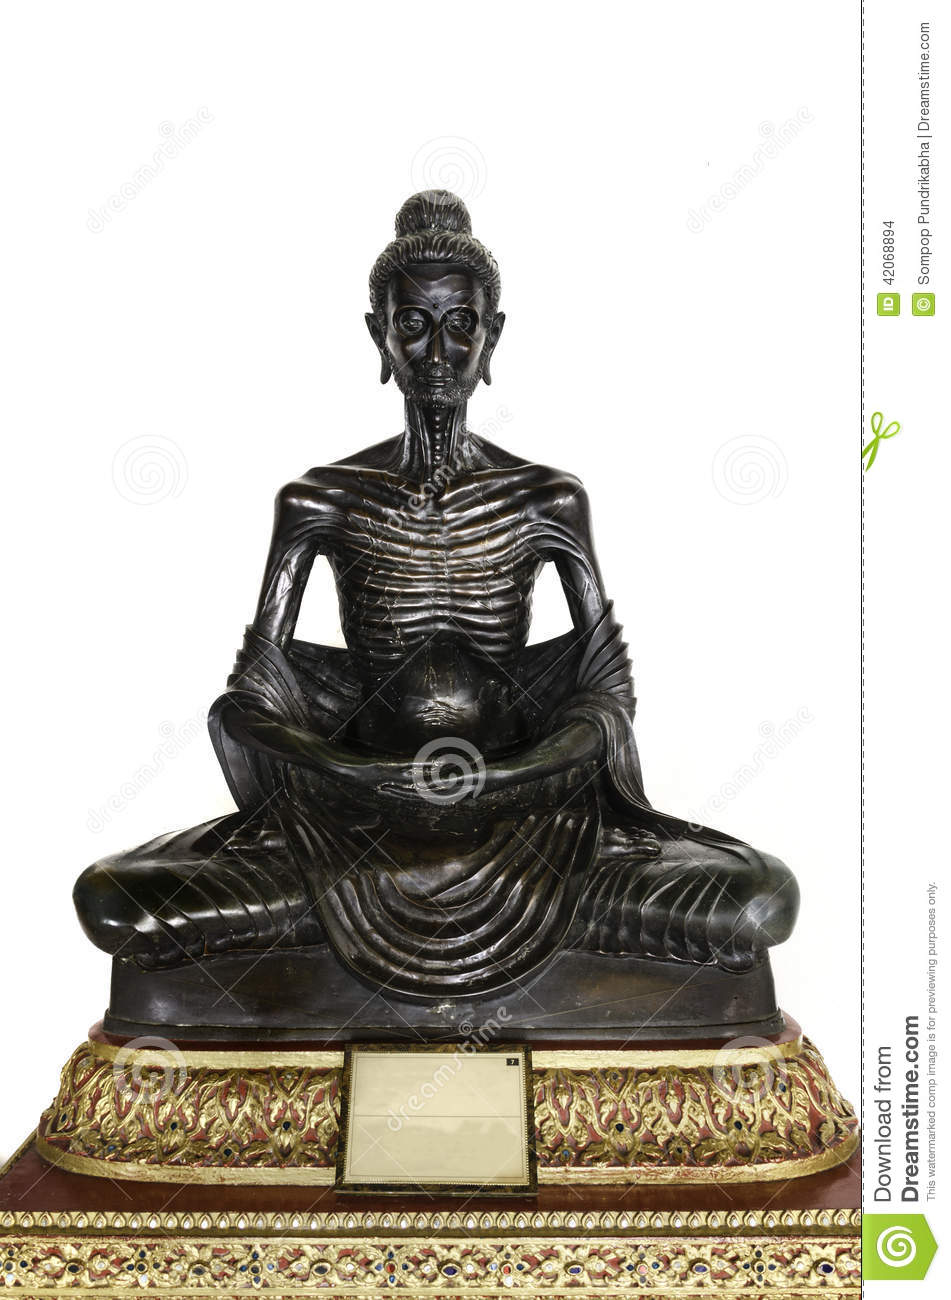 black buddha statue posture skinny stock photo image 42068894. Black Bedroom Furniture Sets. Home Design Ideas